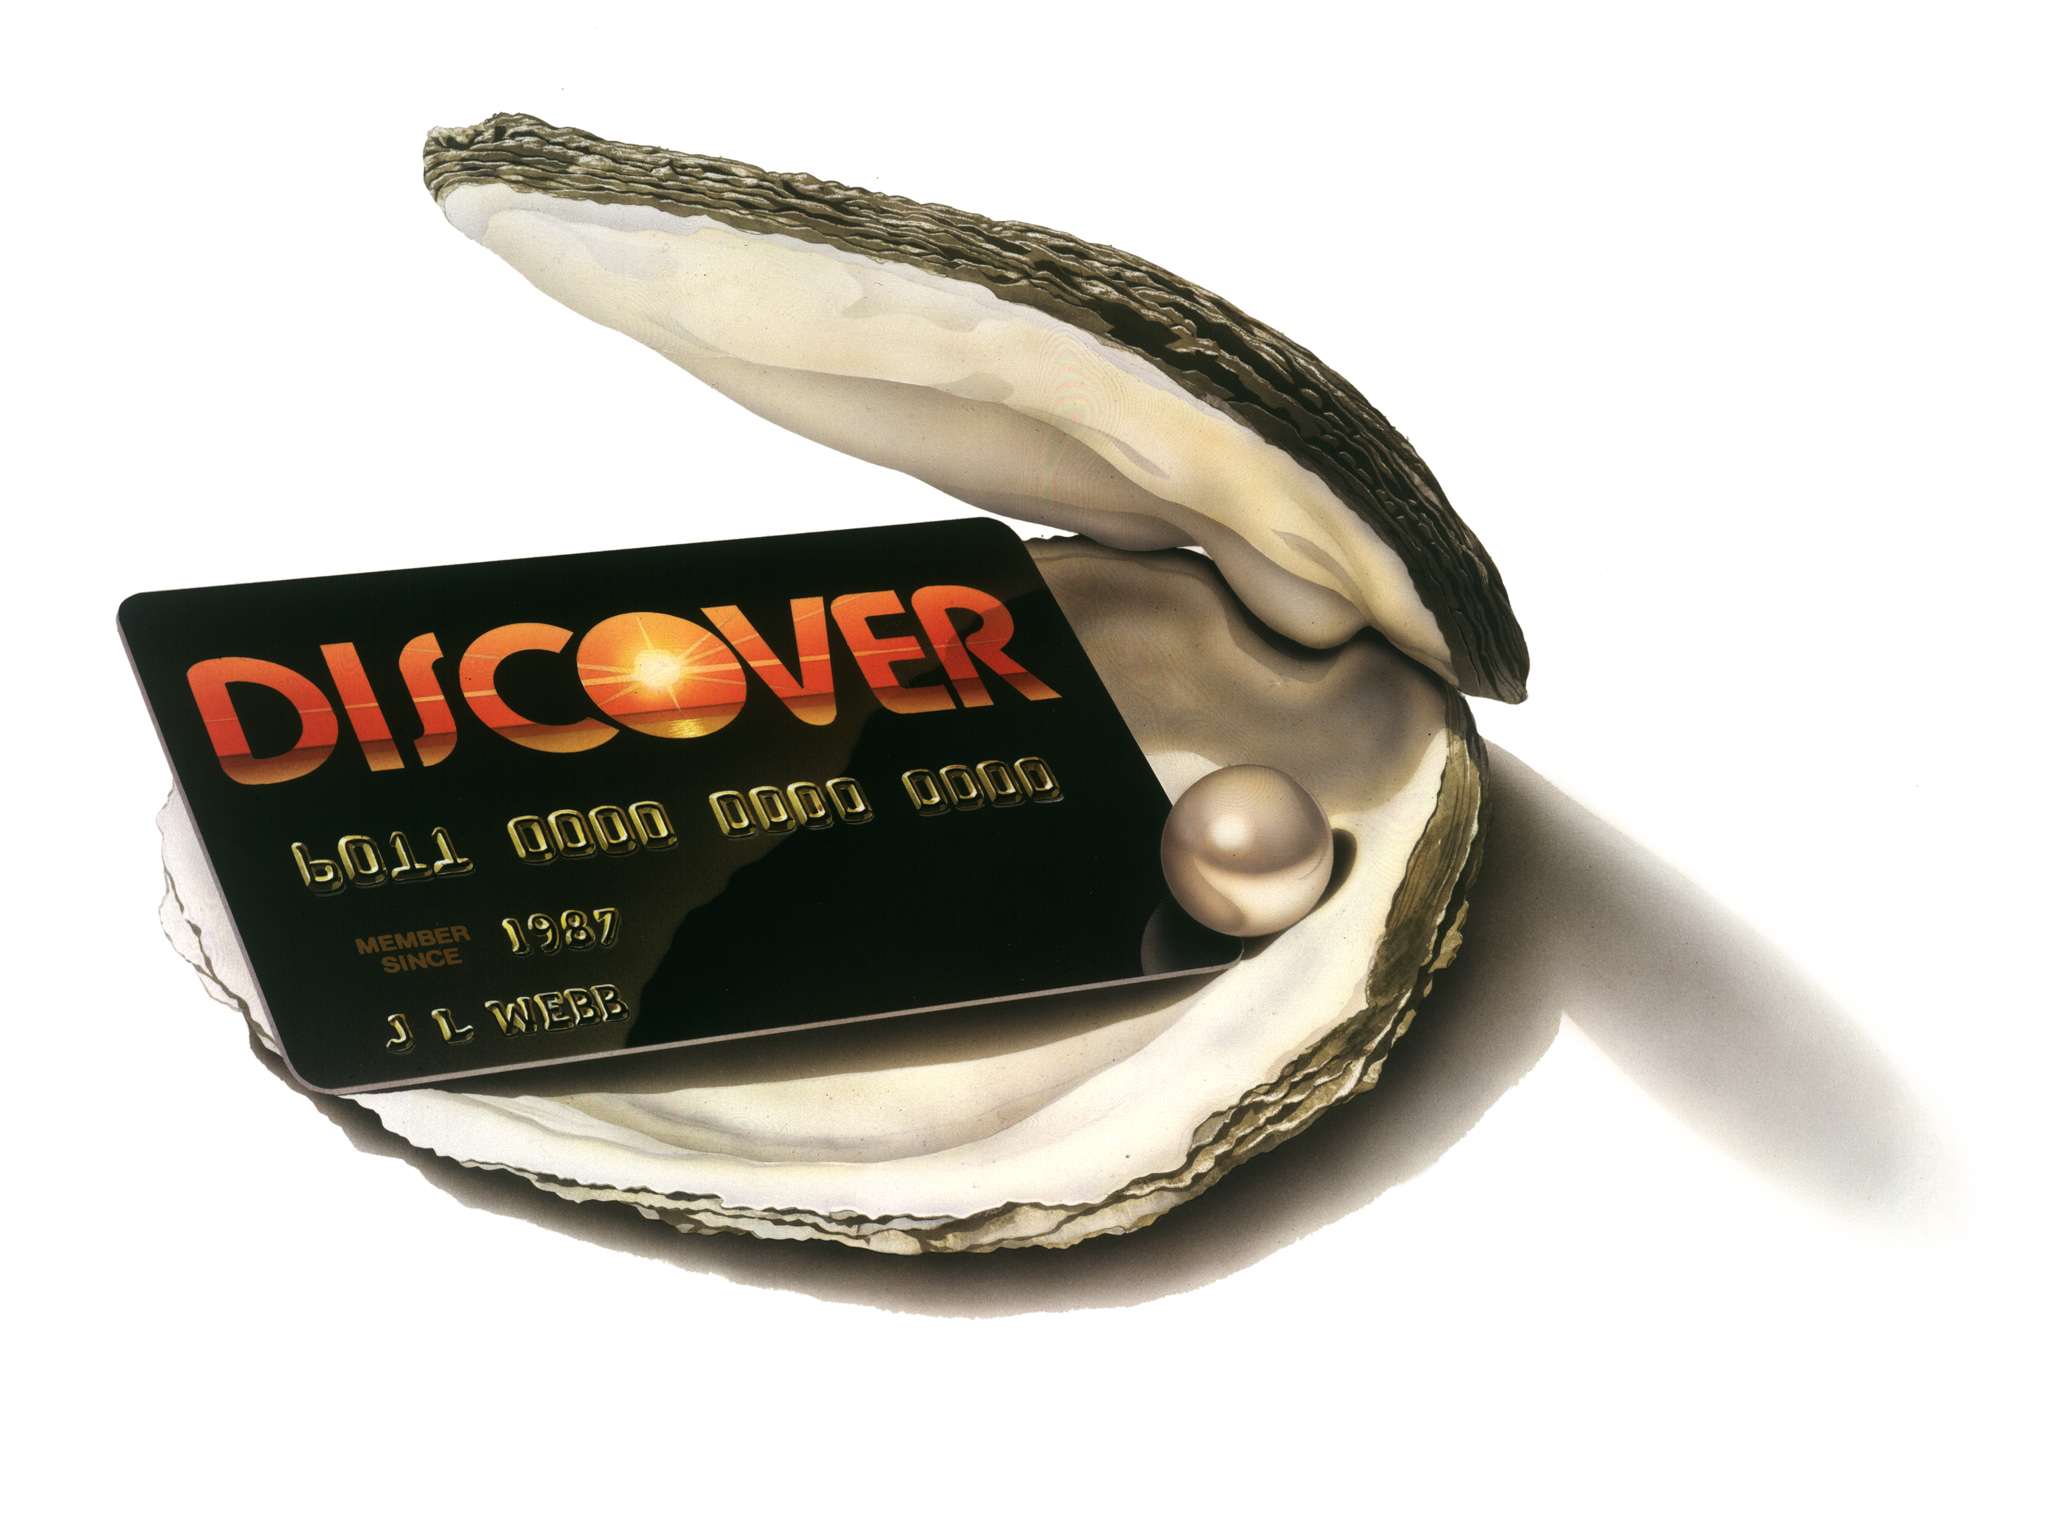 Discover_Clam.jpg